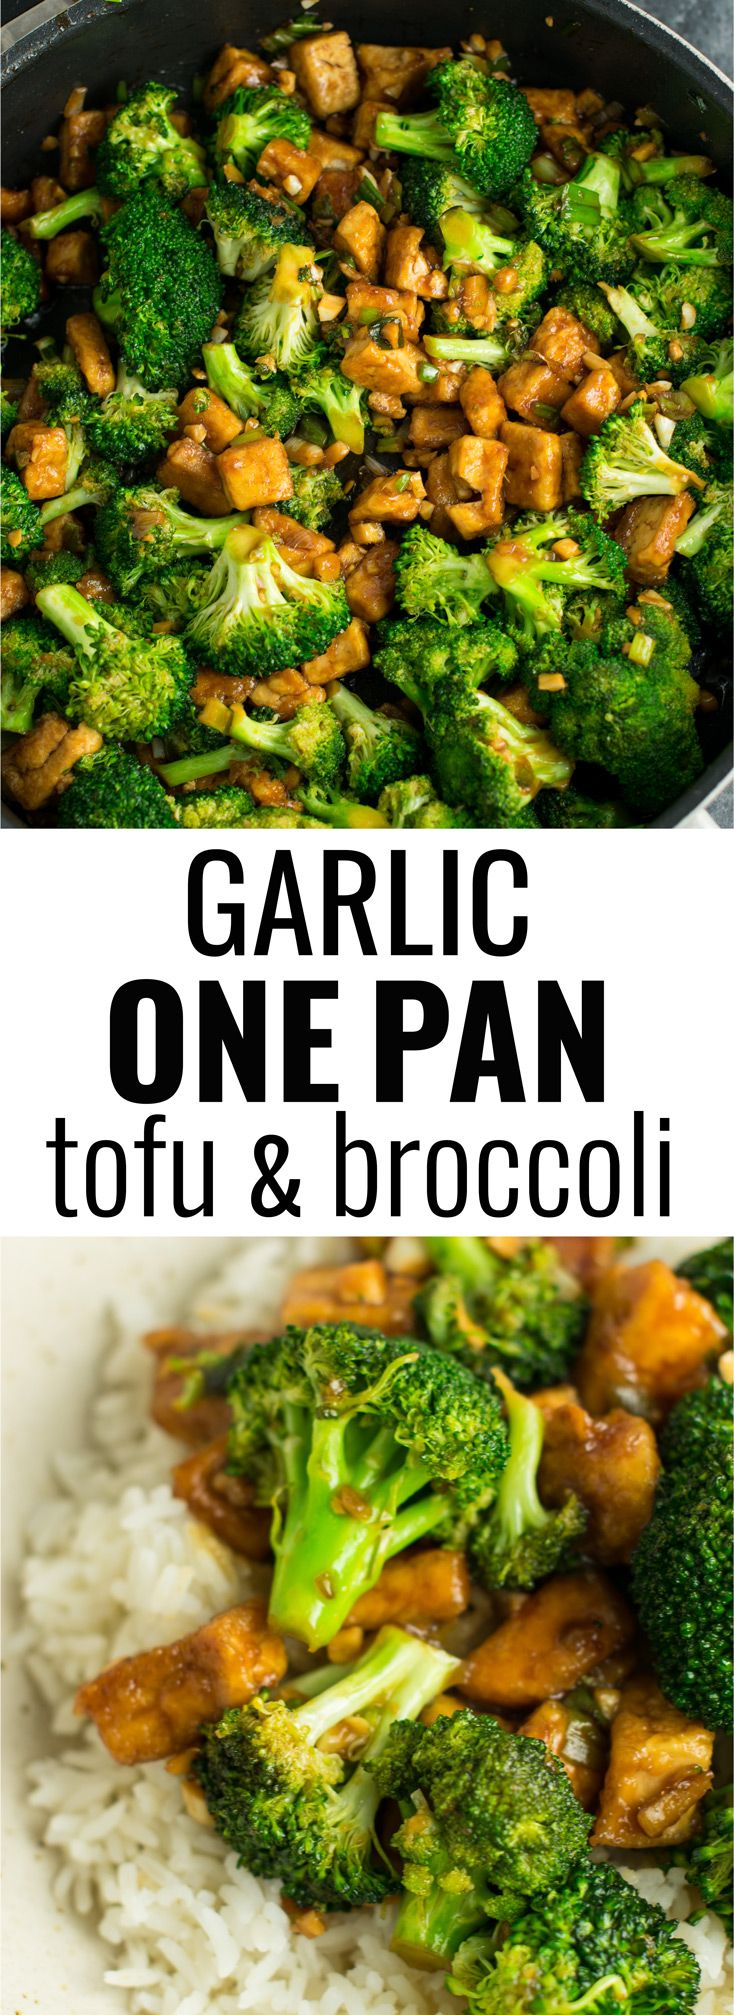 Garlic tofu broccoli skillet recipe made in just one pan. A healthy alternative to takeout in a rich garlicky sauce with fresh broccoli.